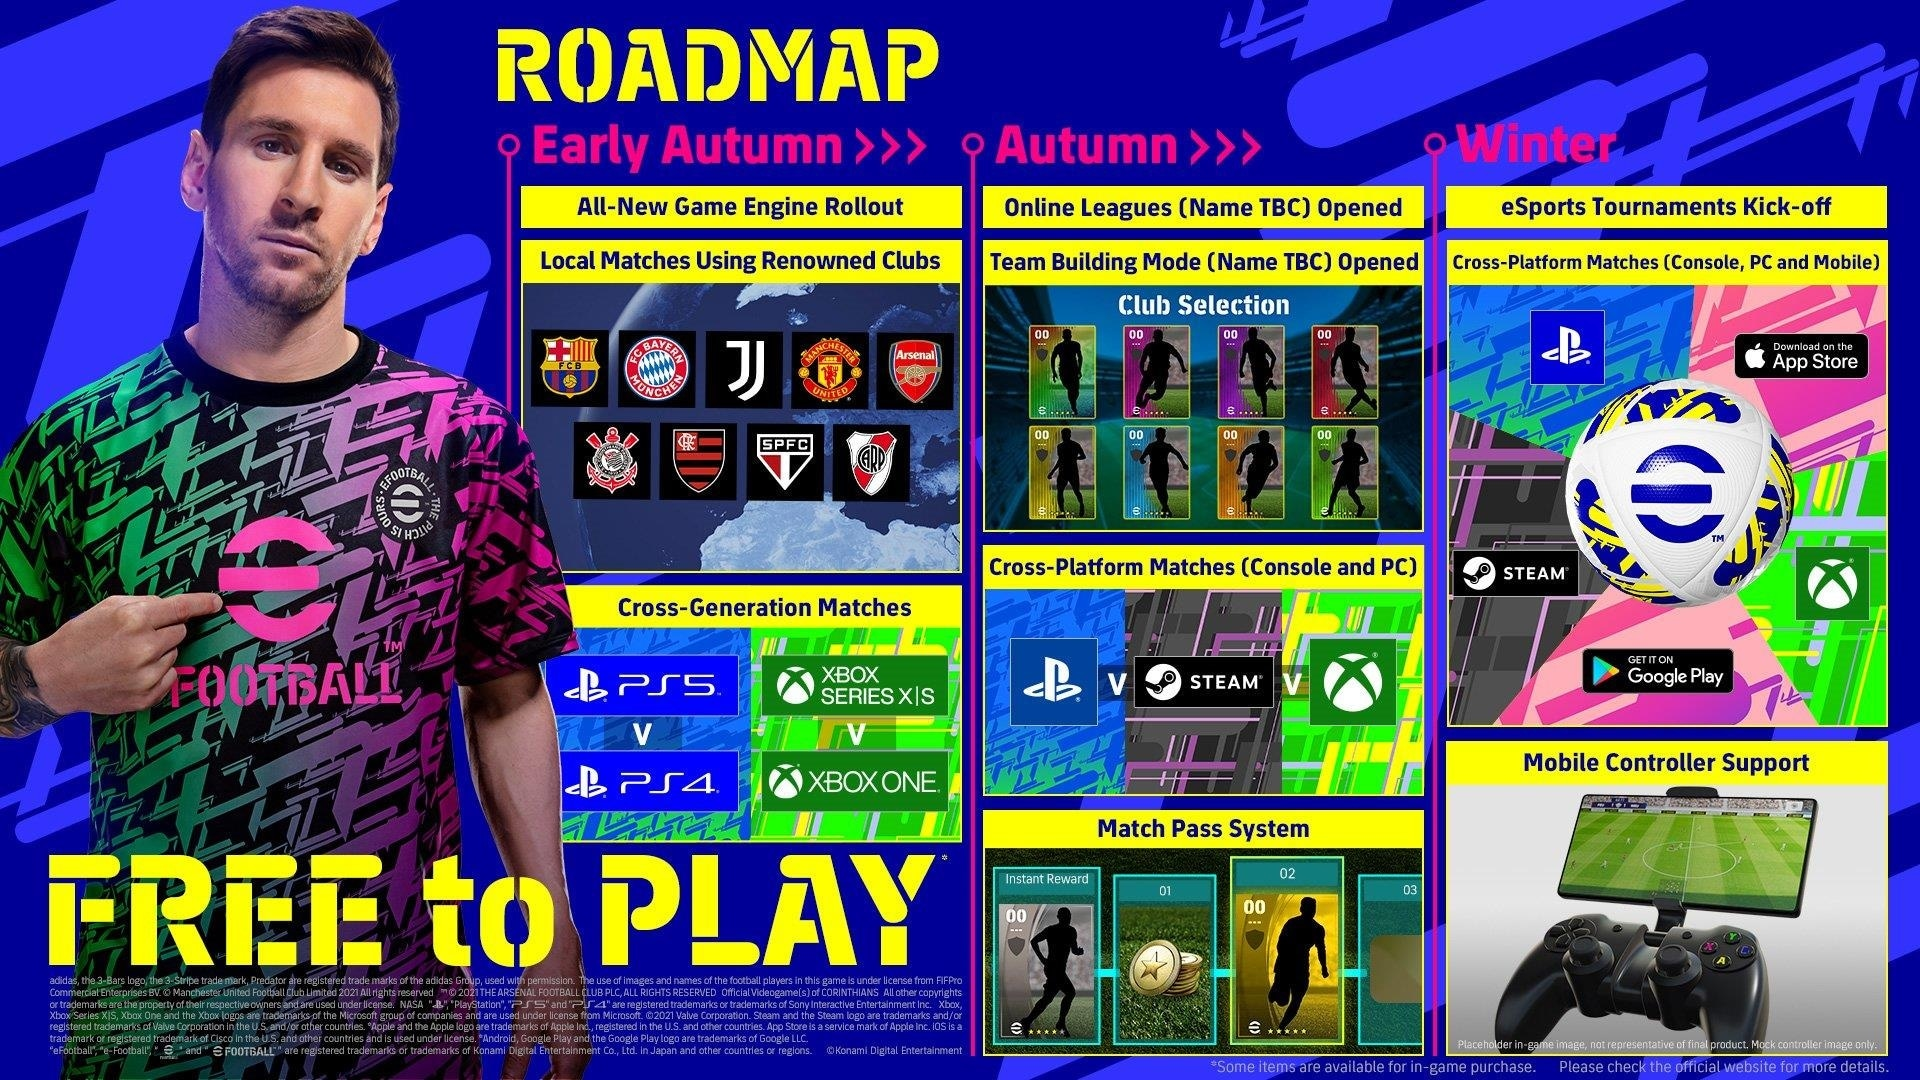 pes 2022 efootball free to play roadmap